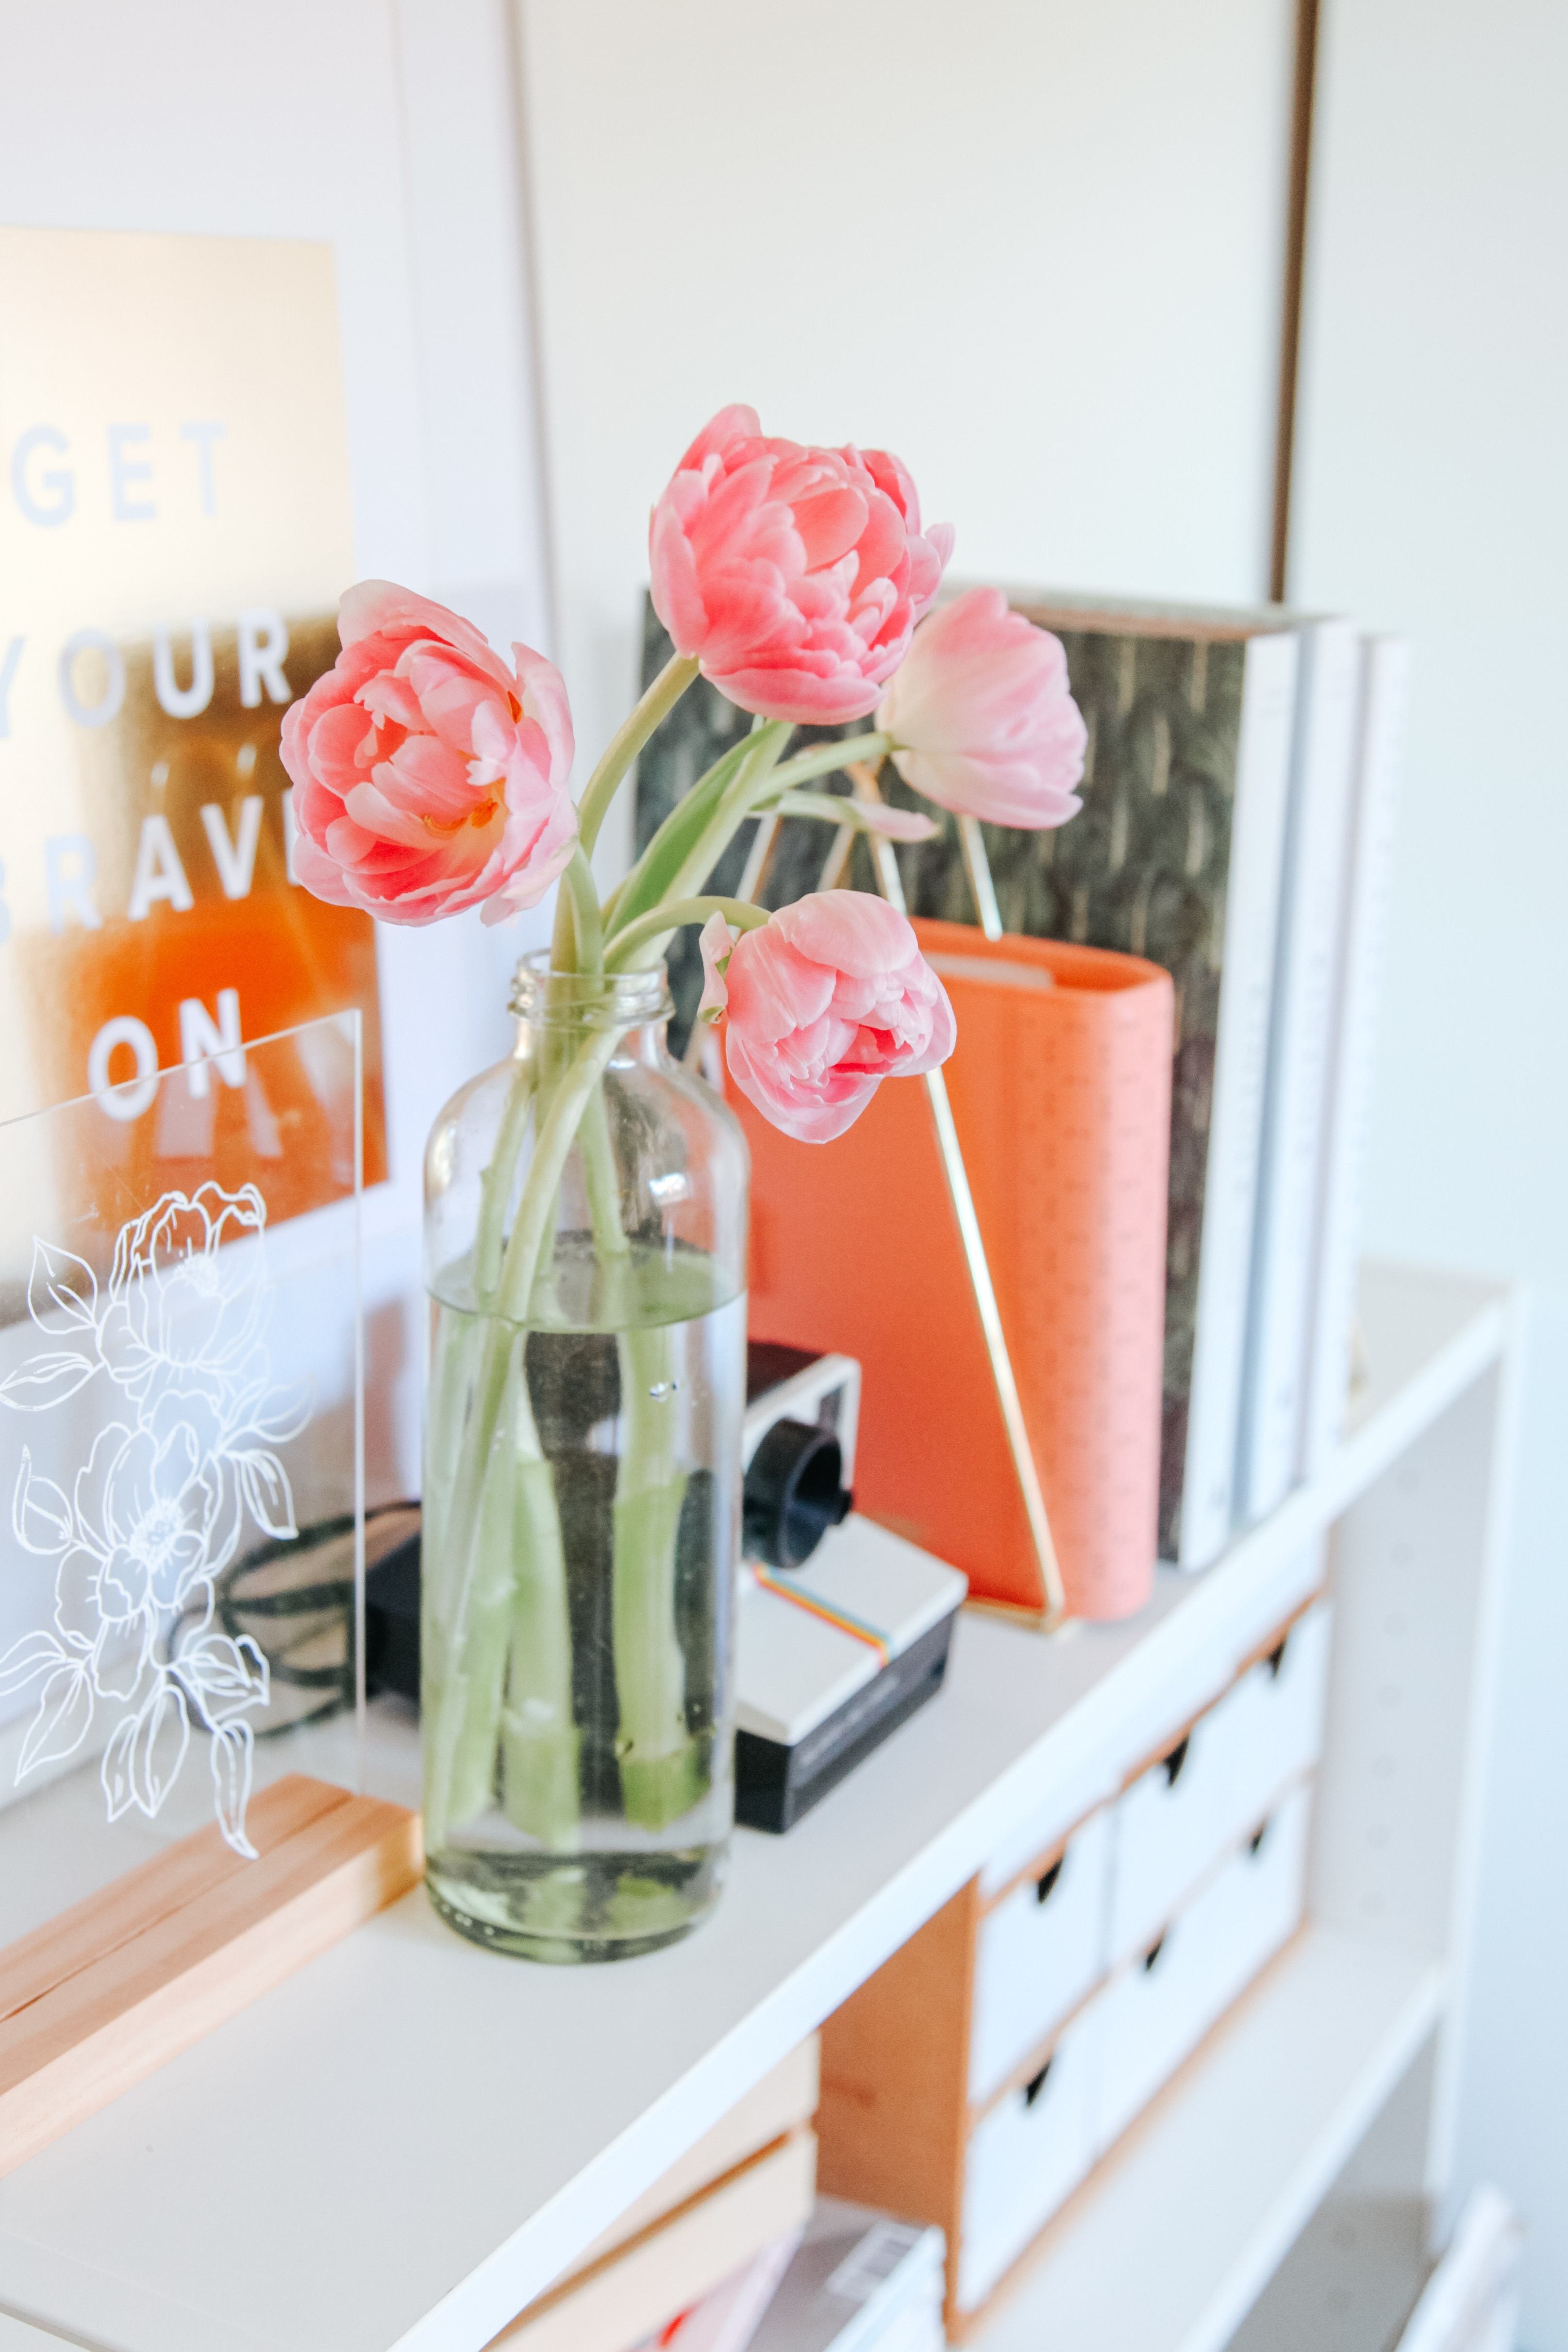 Pink pastel tulips in a glass vase on a shelf